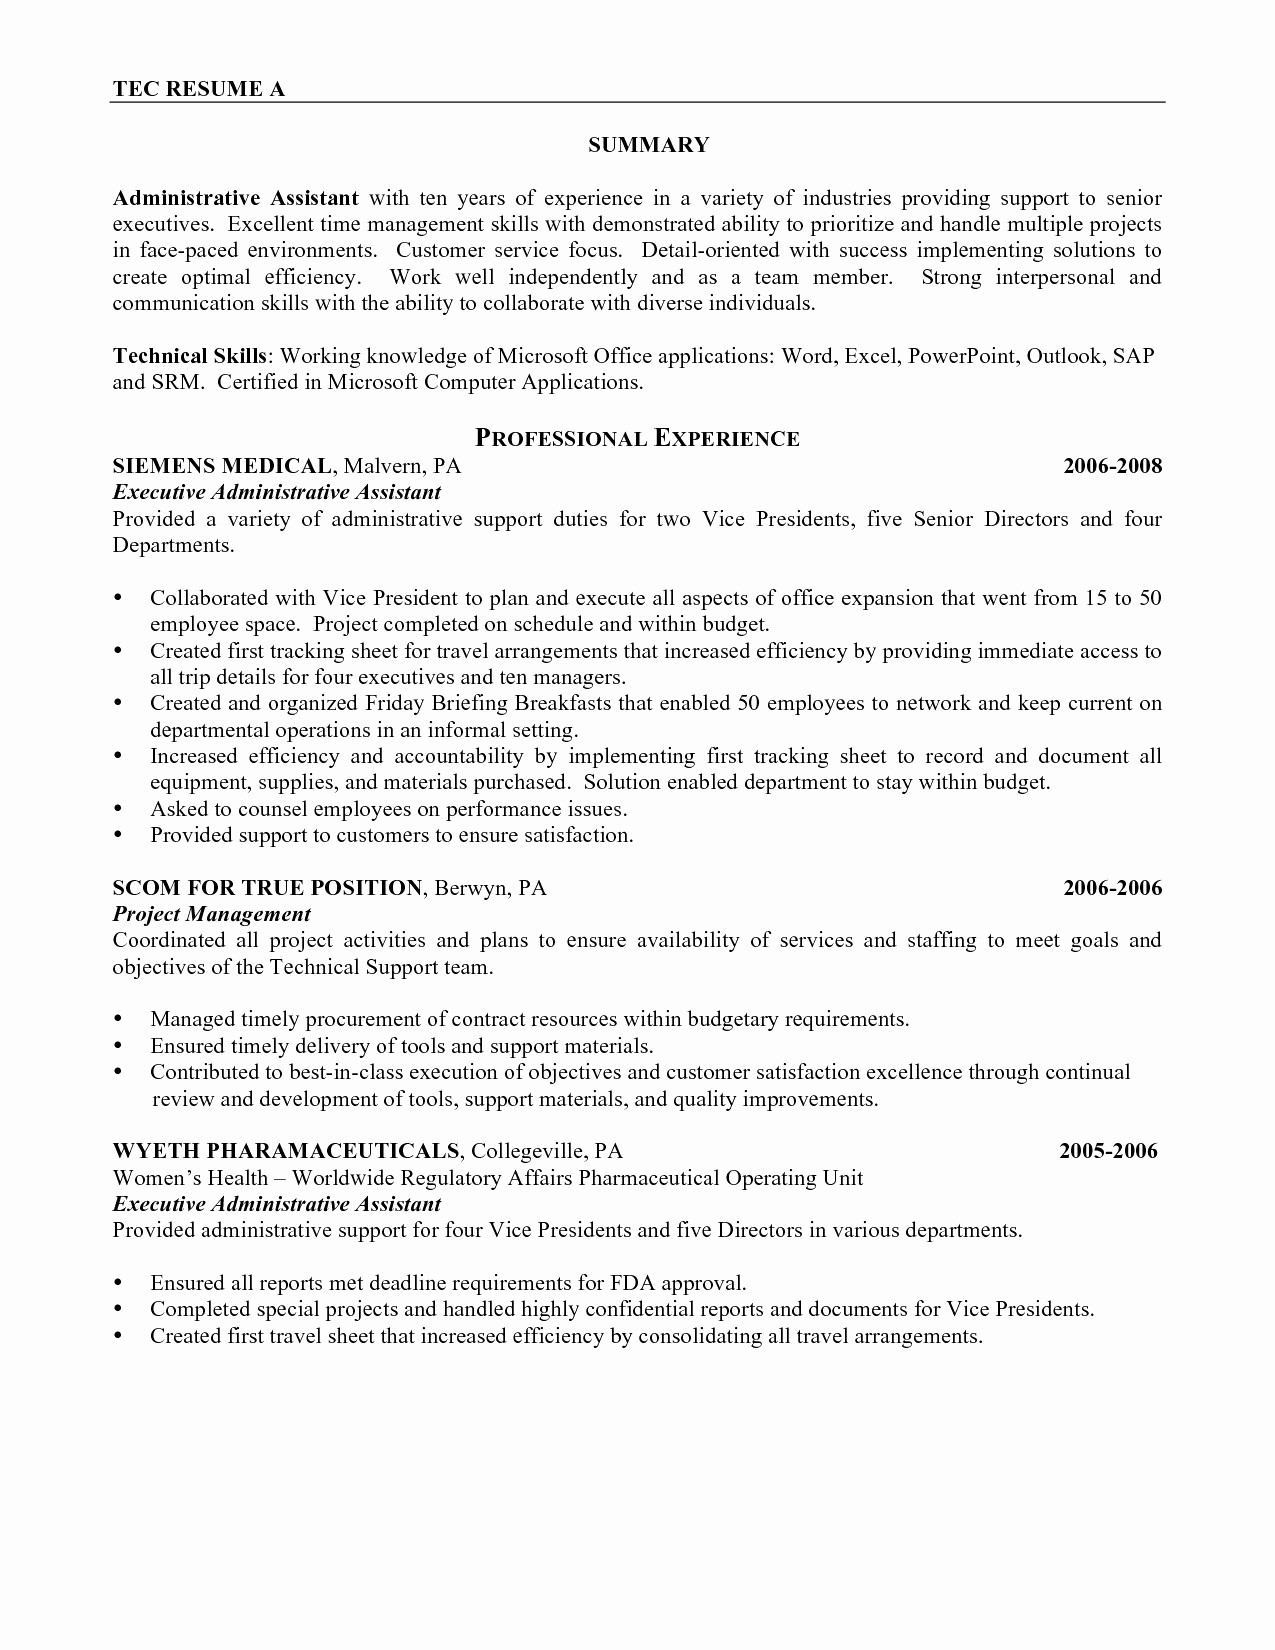 Medical Coder Resume Examples - Medical Coding Fresher Resume Samples Resume Resume Examples